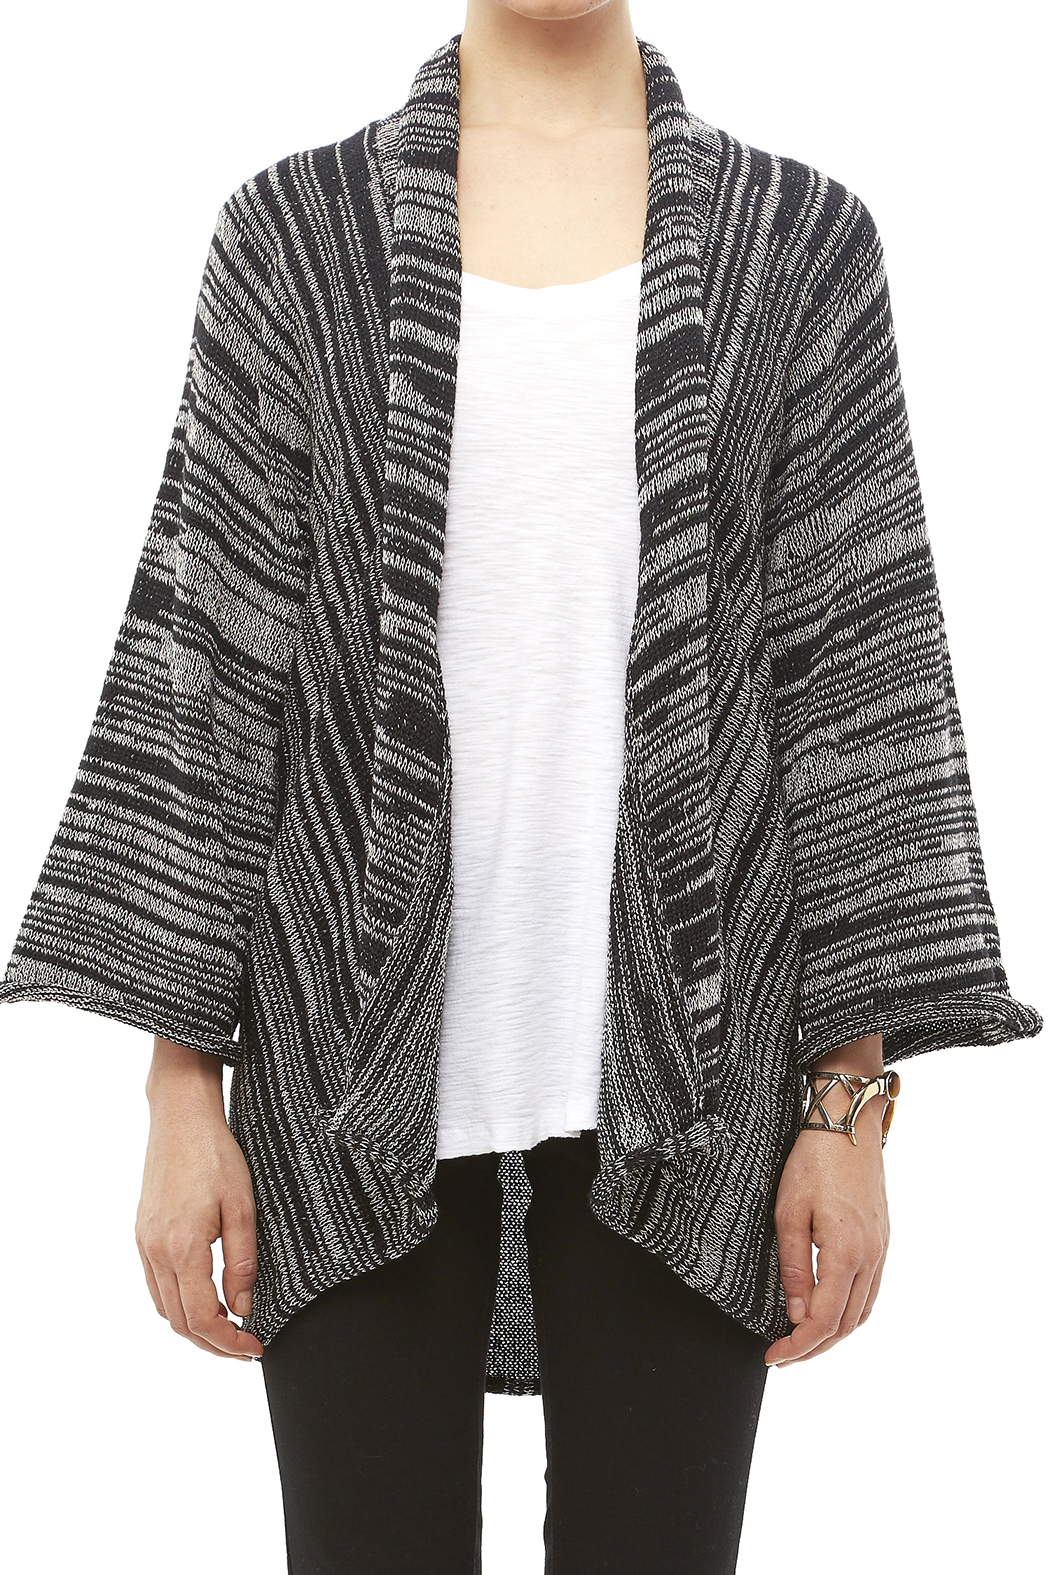 DC KNITS Black White Cardigan - Side Cropped Image